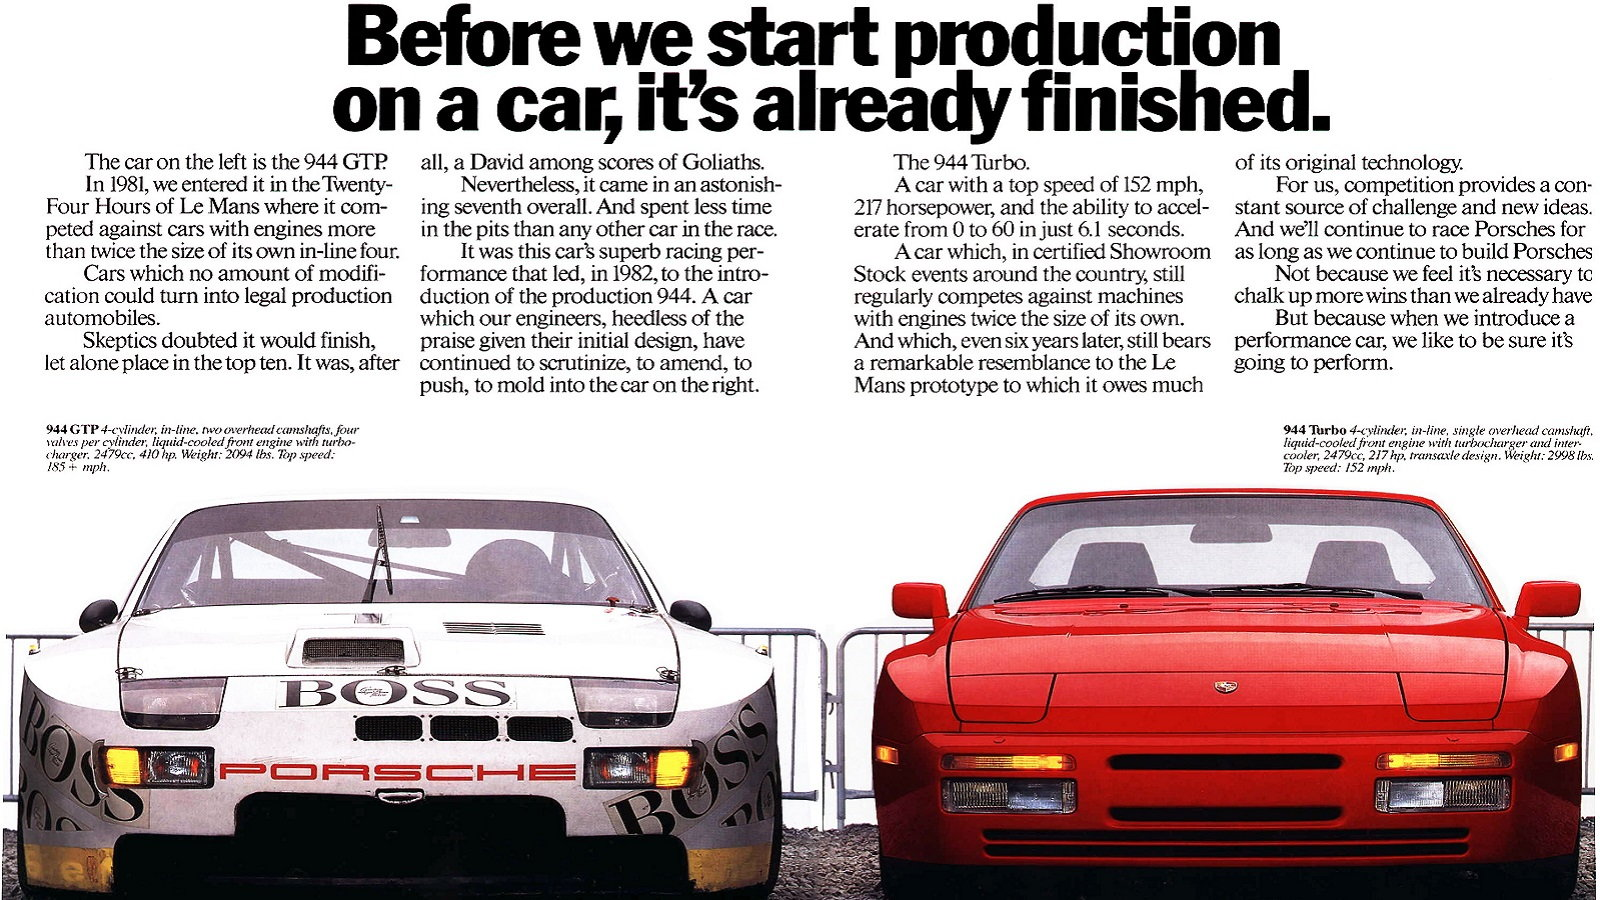 The Line Between Race Car and Production Car